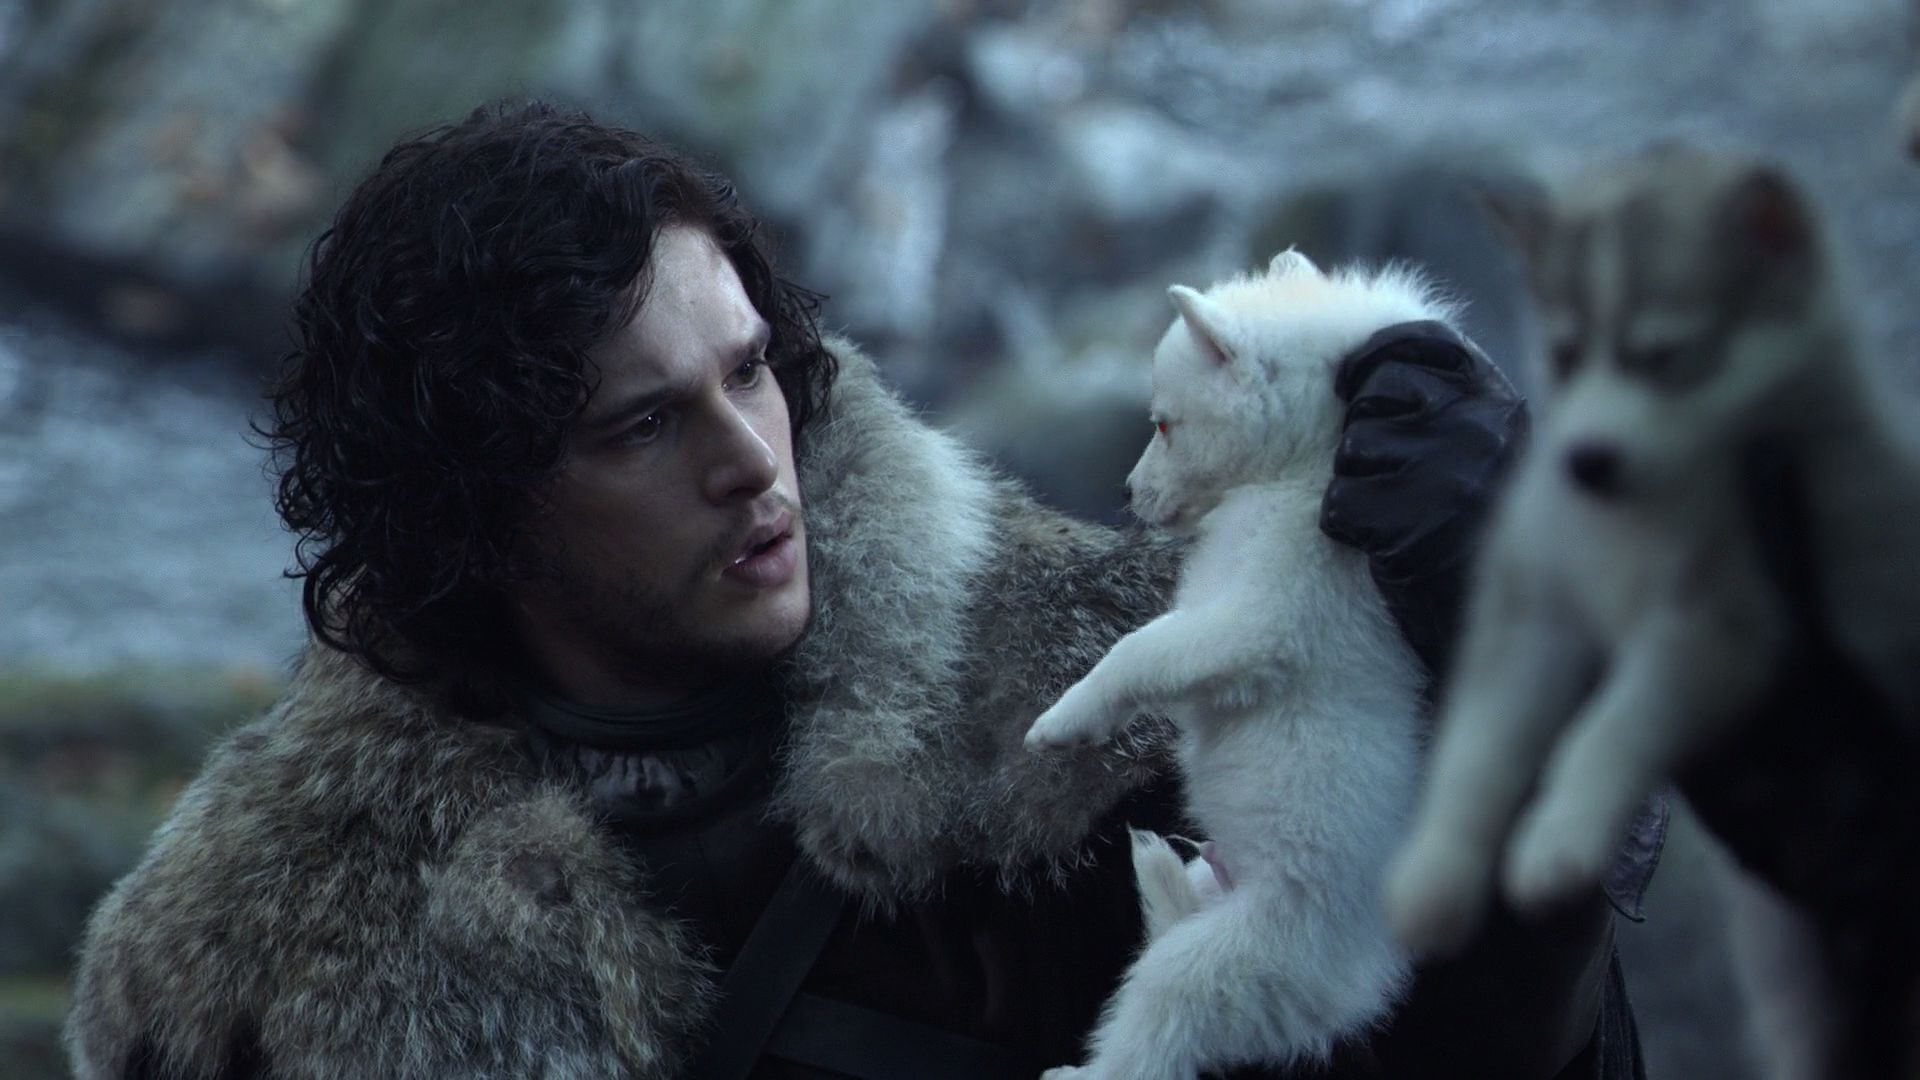 dead-is-dead-but-could-jon-snow-still-come-back-in-one-of-these-ways-584186.jpg